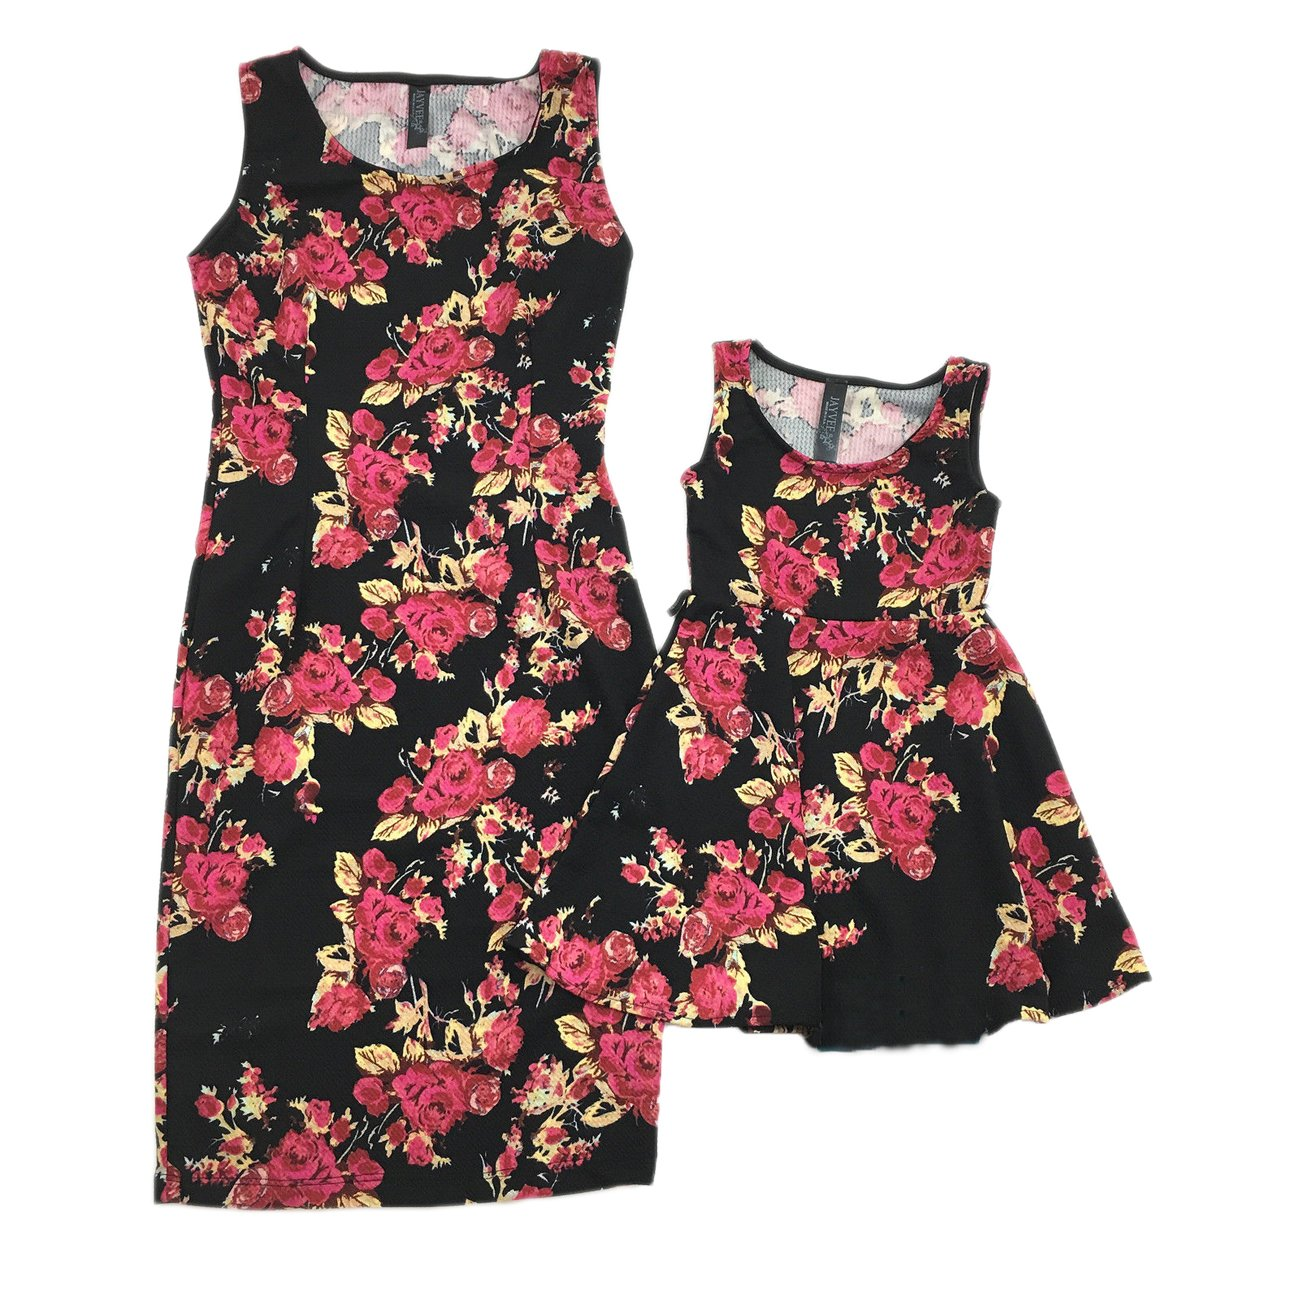 Matching Family Clothes Mother Daughter Women Dress Girl Sleeveless Outfits